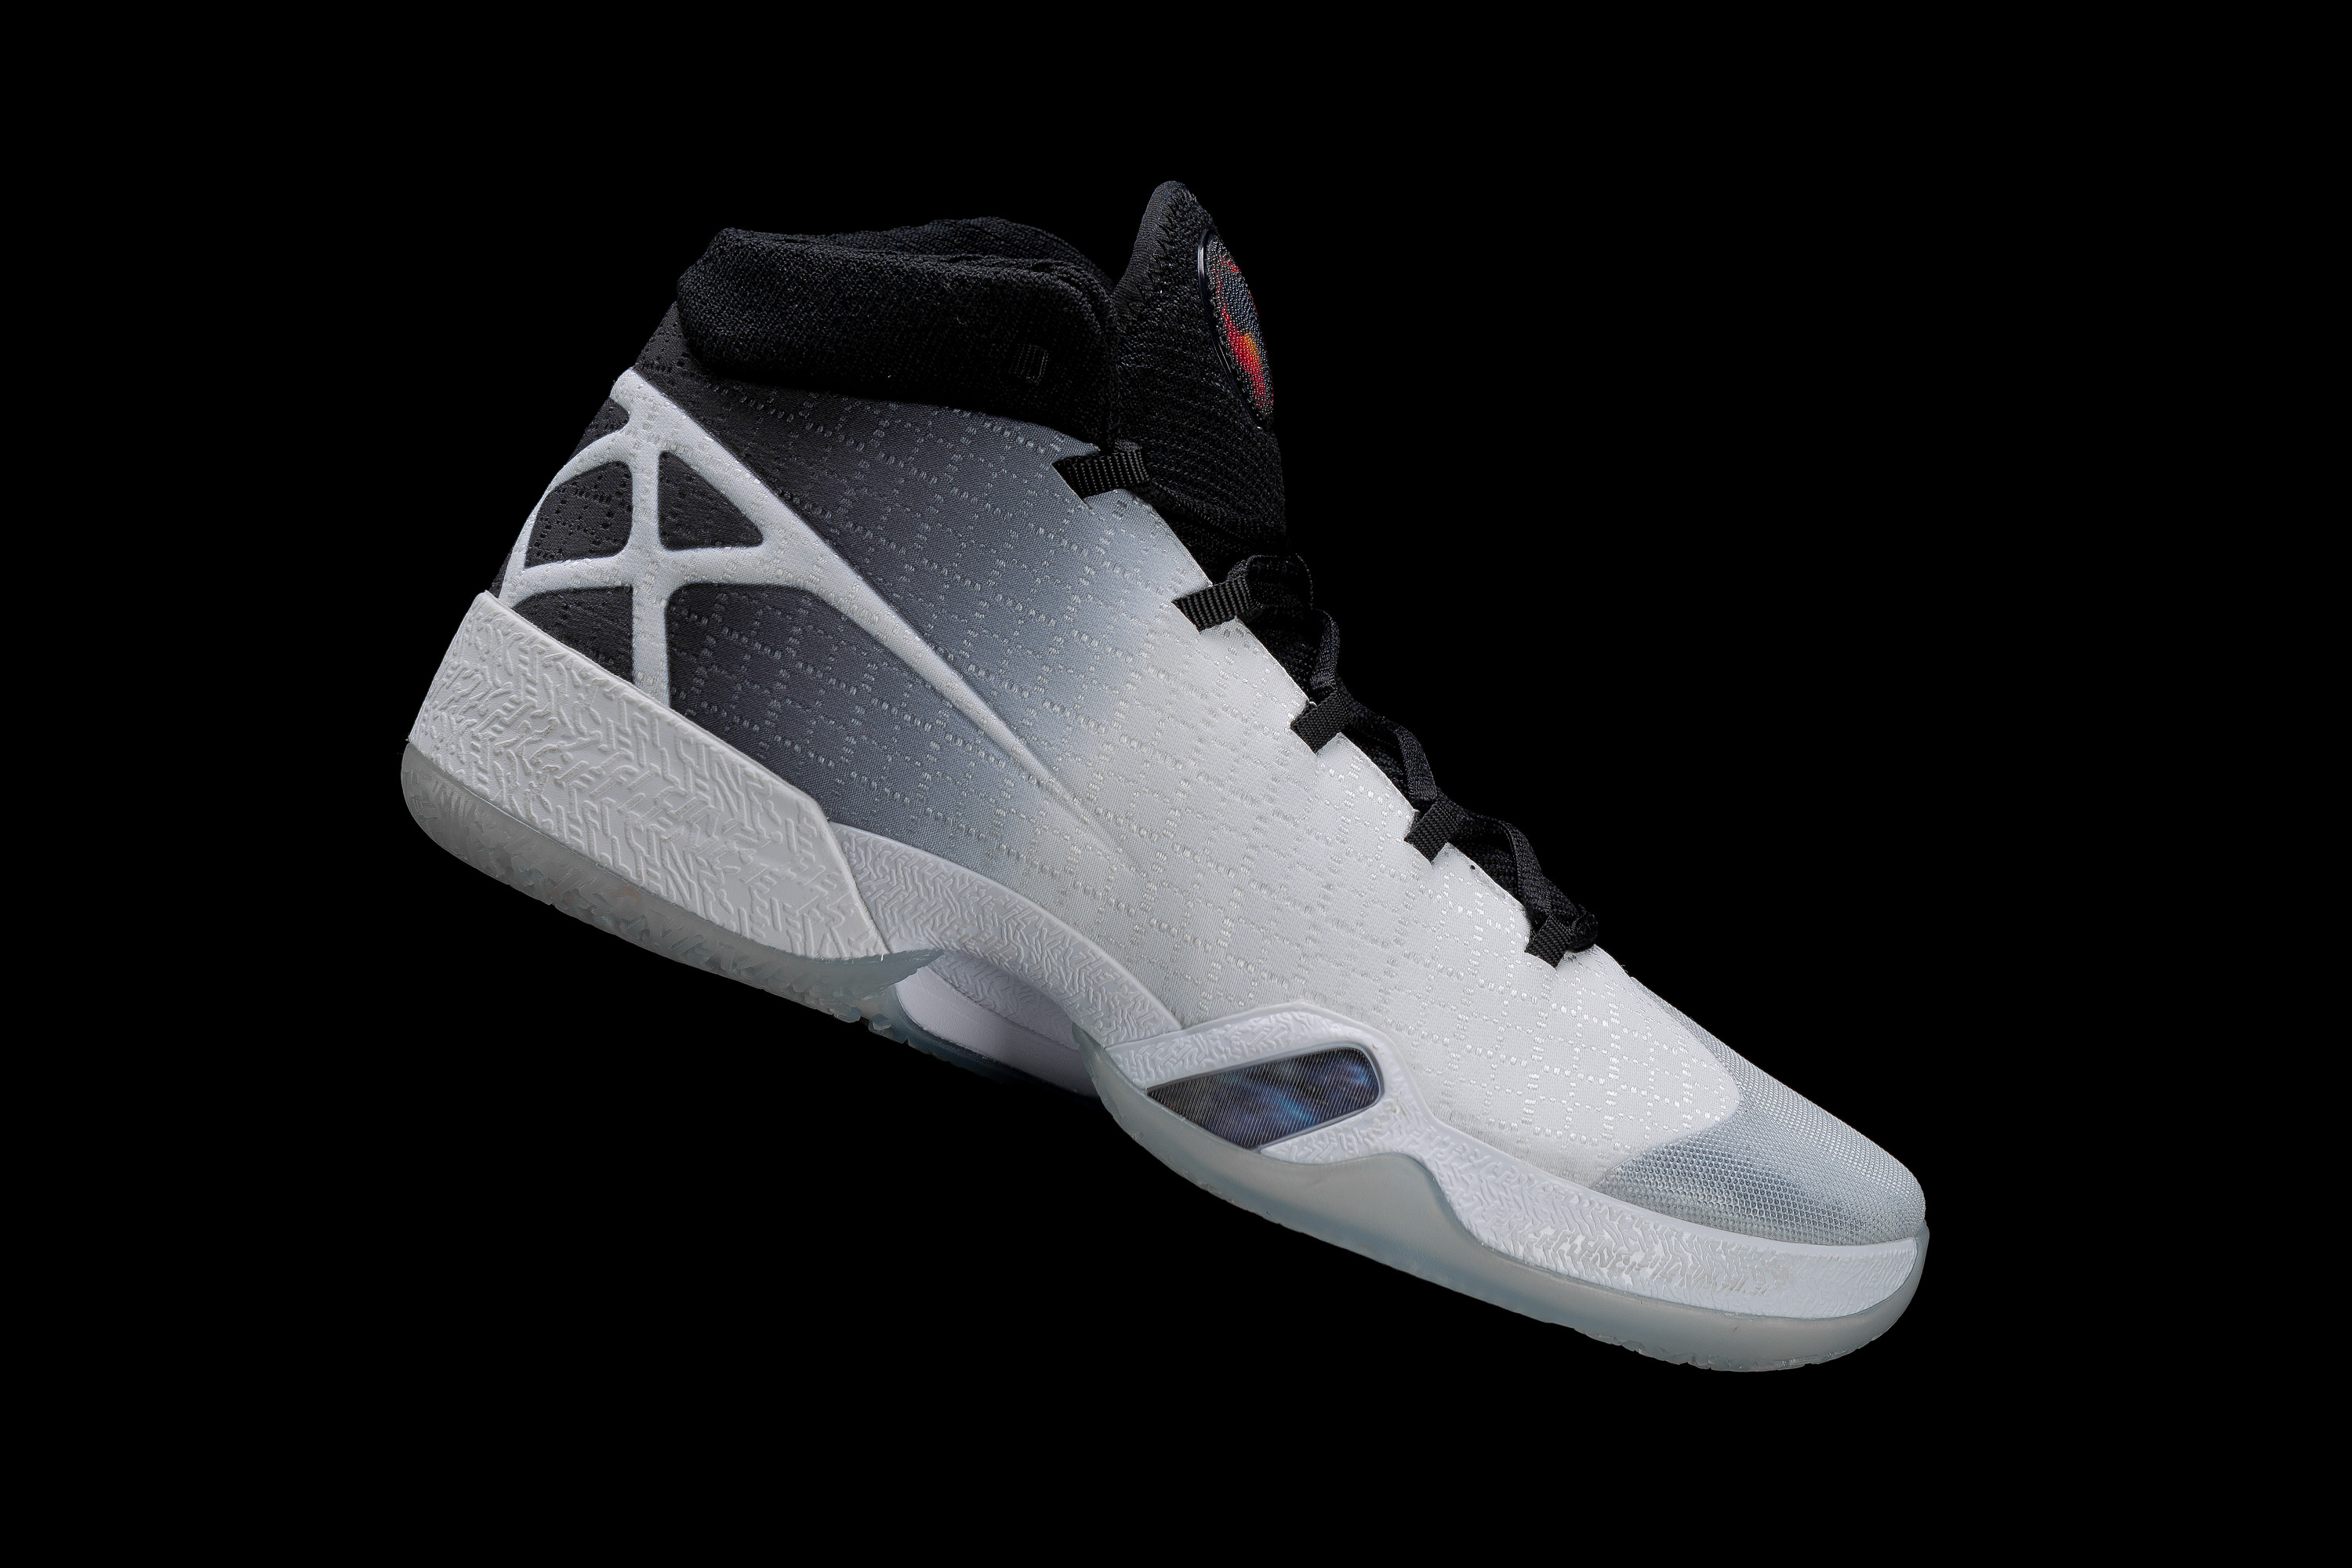 outlet store accf9 94bed get air jordan 30. i remember thinking about how silhouettes are important  in the world